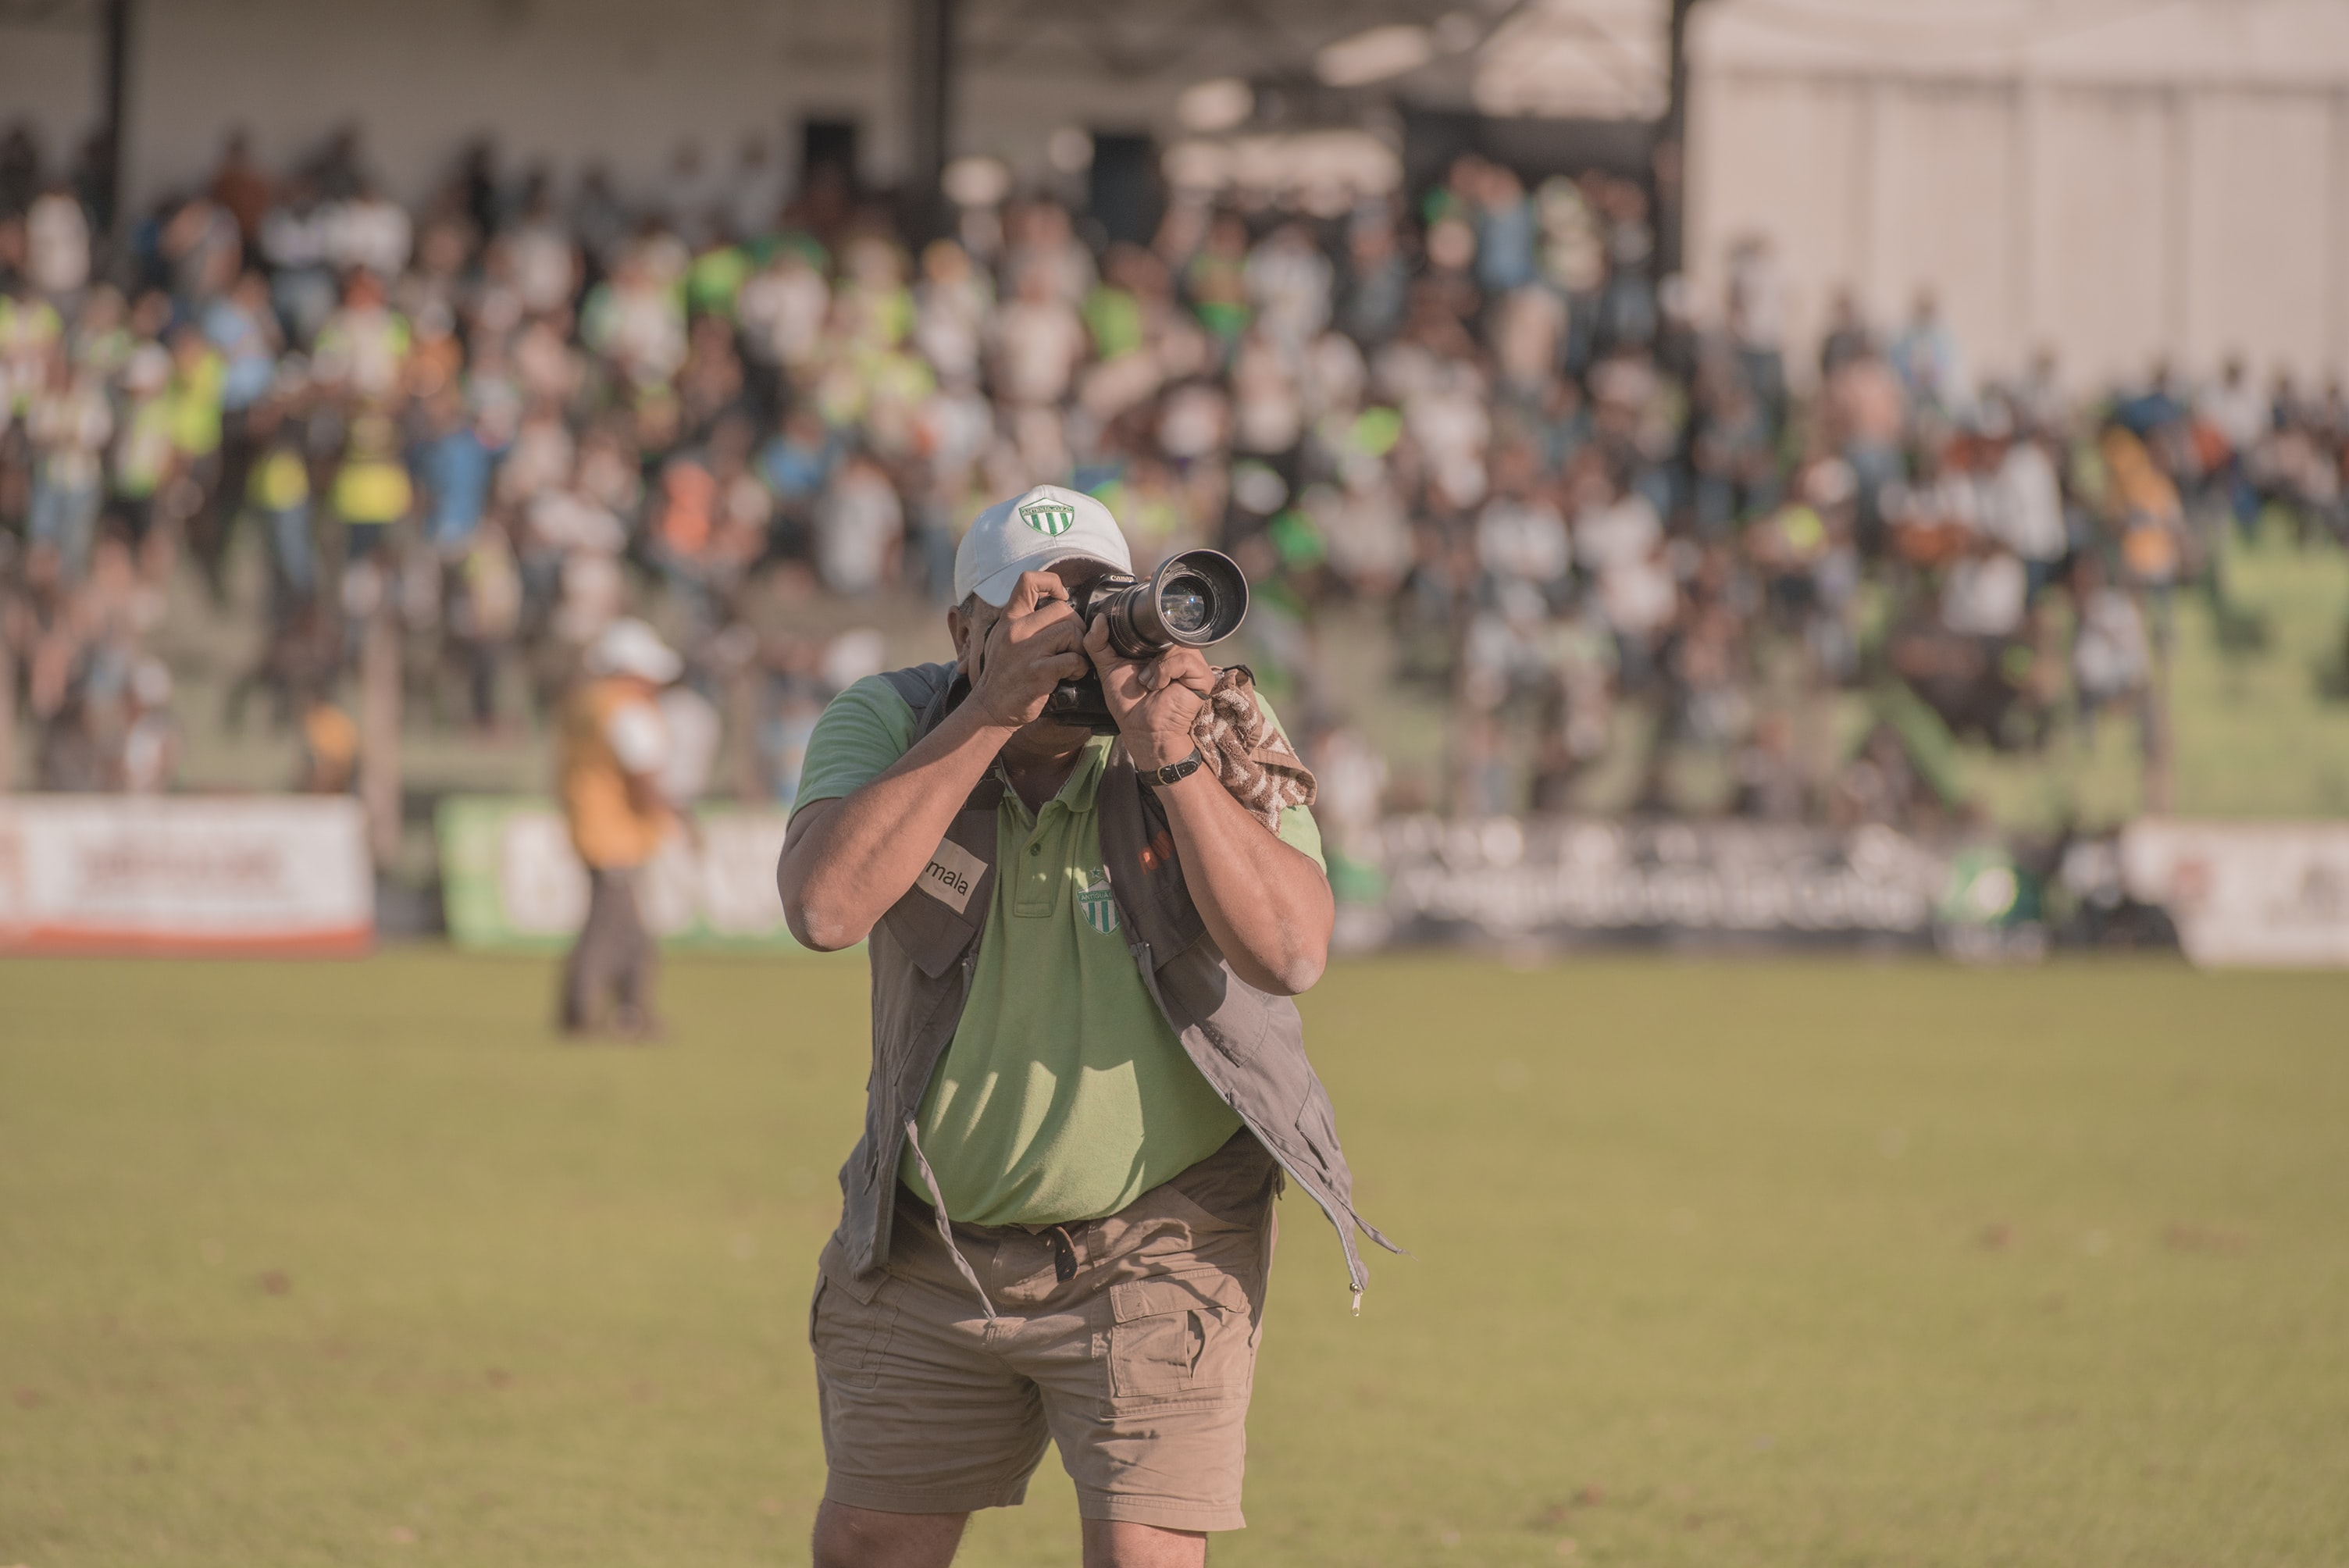 man holding camera near sports field